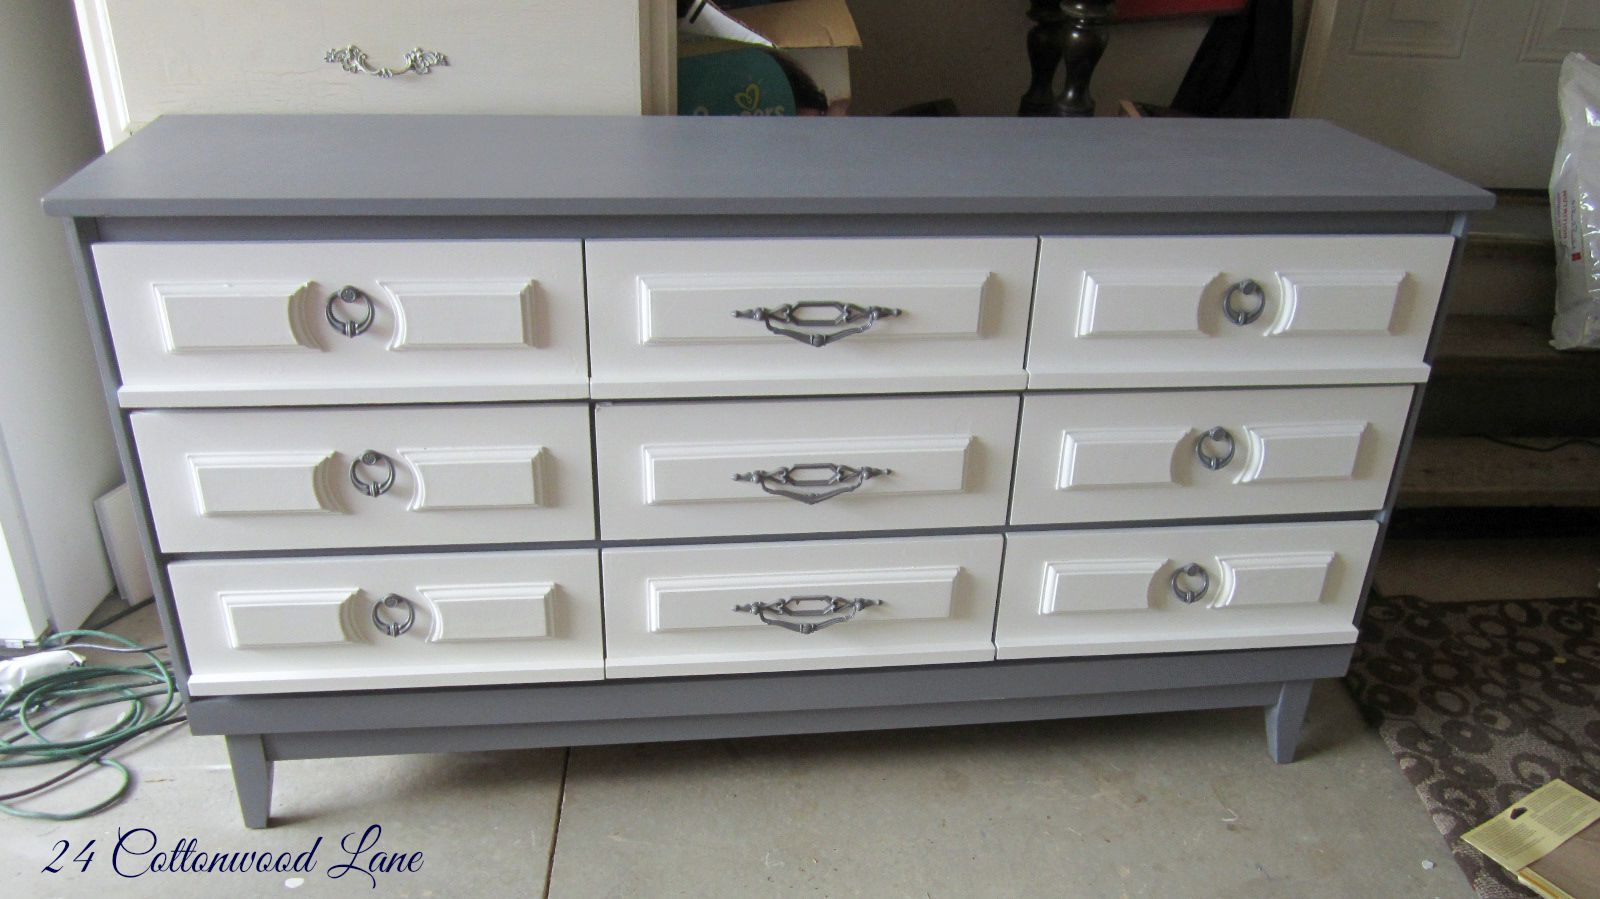 Account Suspended Dressers Makeover Upcycled Furniture Dresser Makeover [ 899 x 1600 Pixel ]